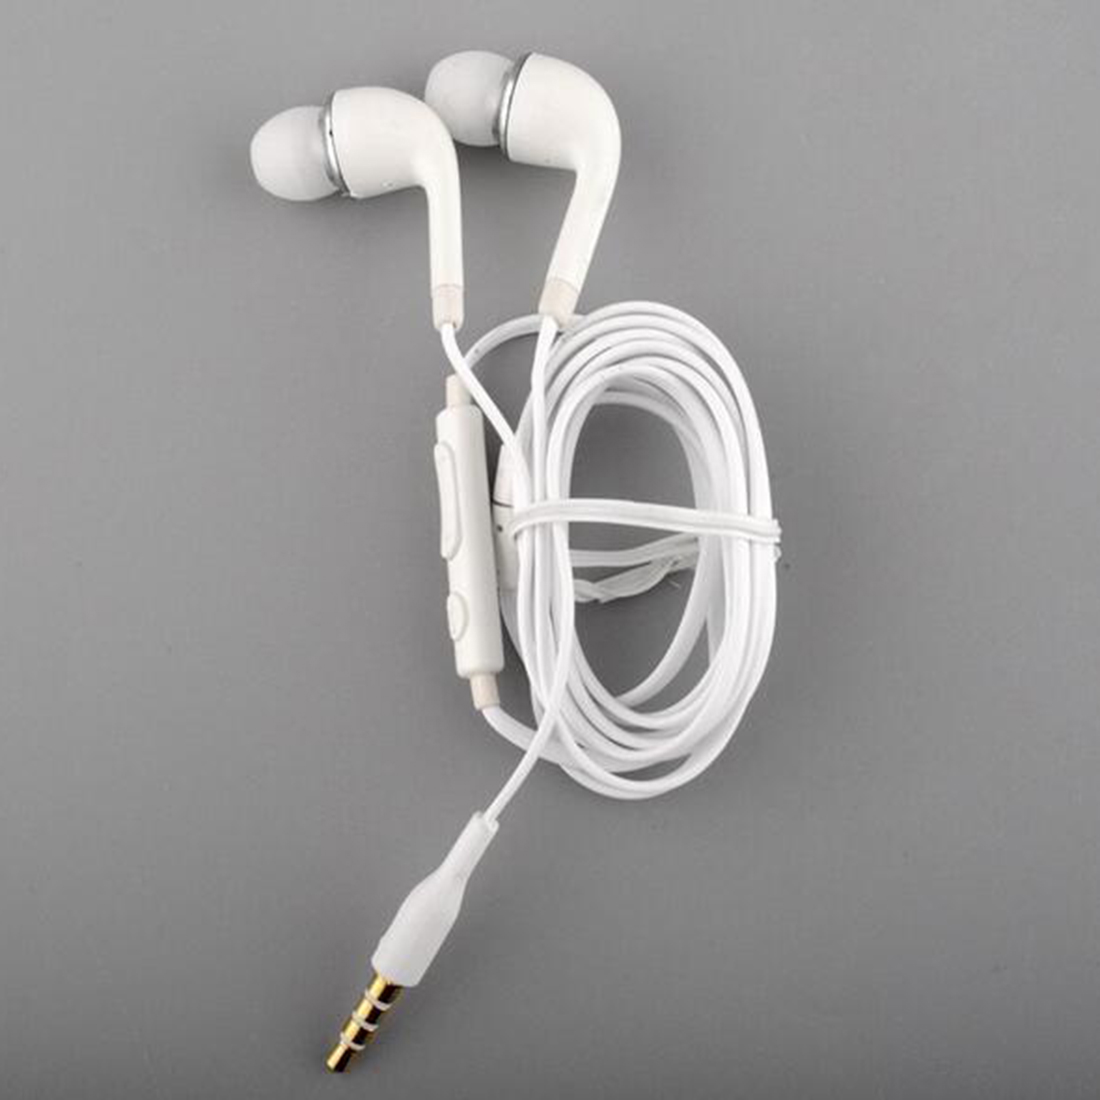 Brand New & High Quality White Handsfree Headset In Ear Earphones For SAMSUNG GALAXY S4 With Remote MIC yl in ear earphones w mic line control for samsung galaxy n7100 note 3 n9000 pink 112cm